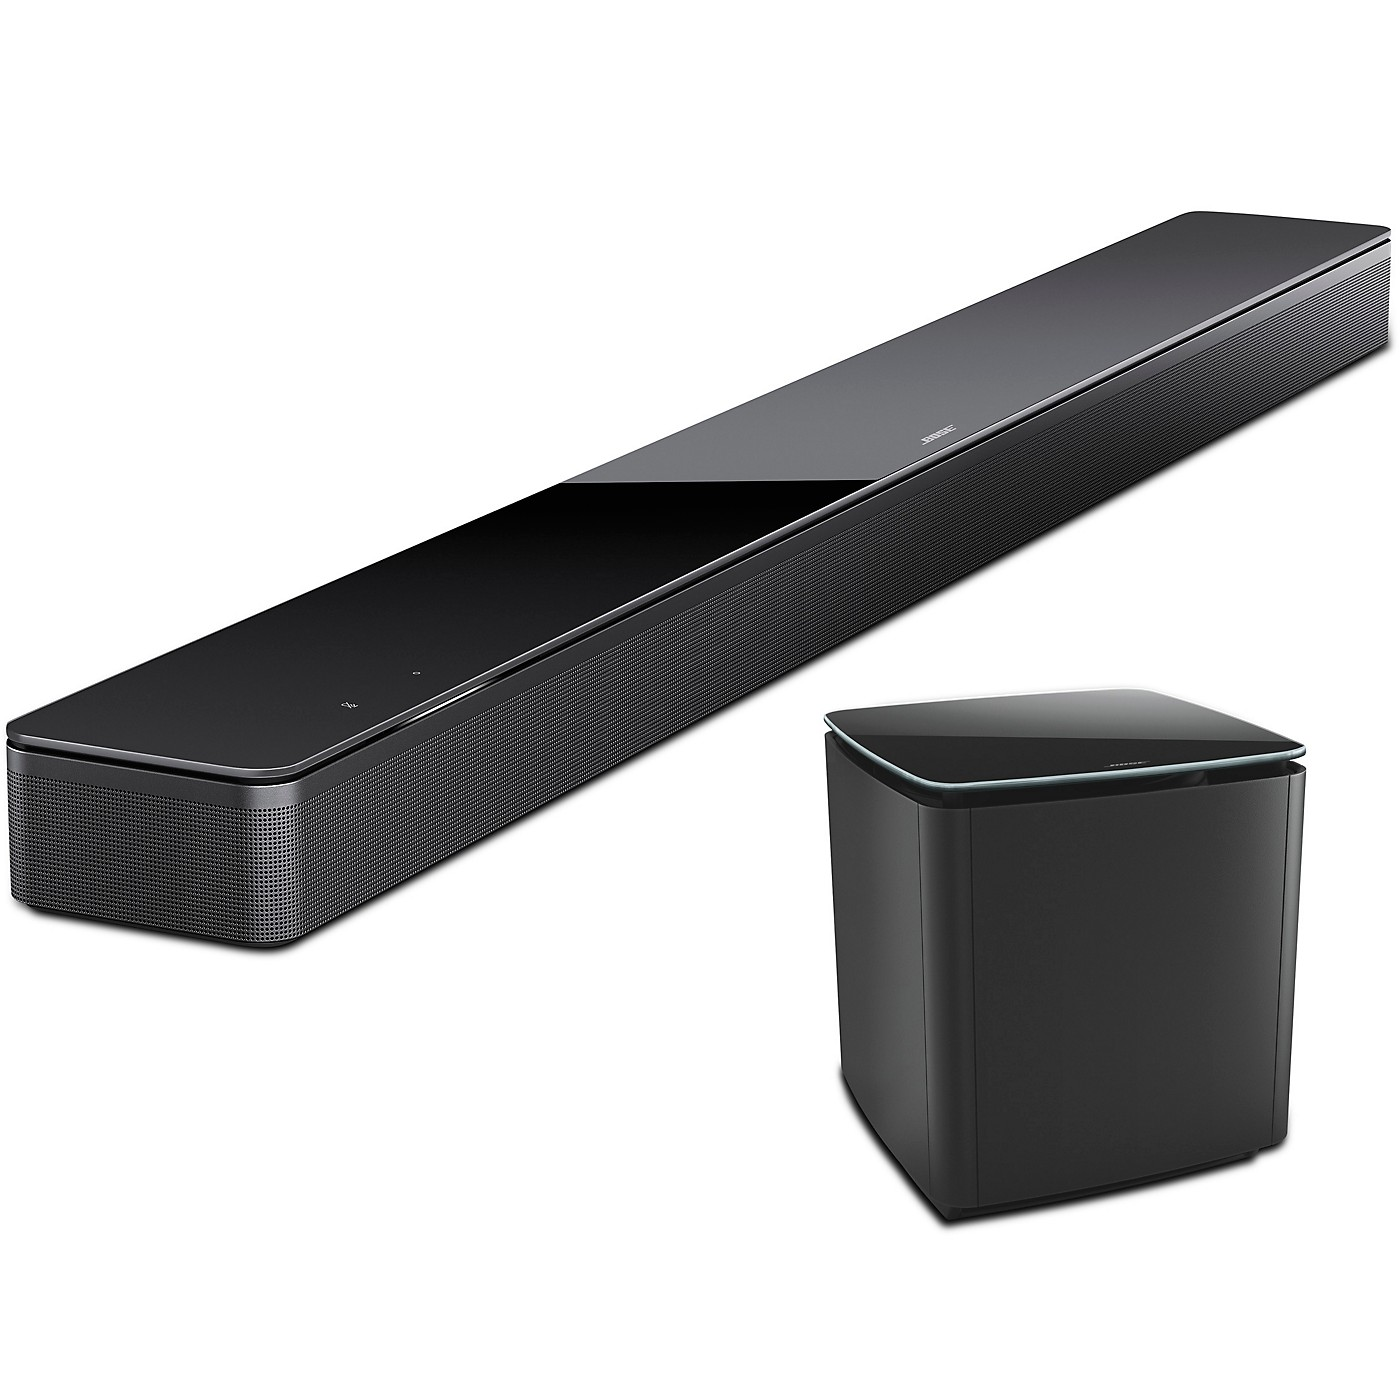 Bose Soundbar and Bass Module 700 thumbnail